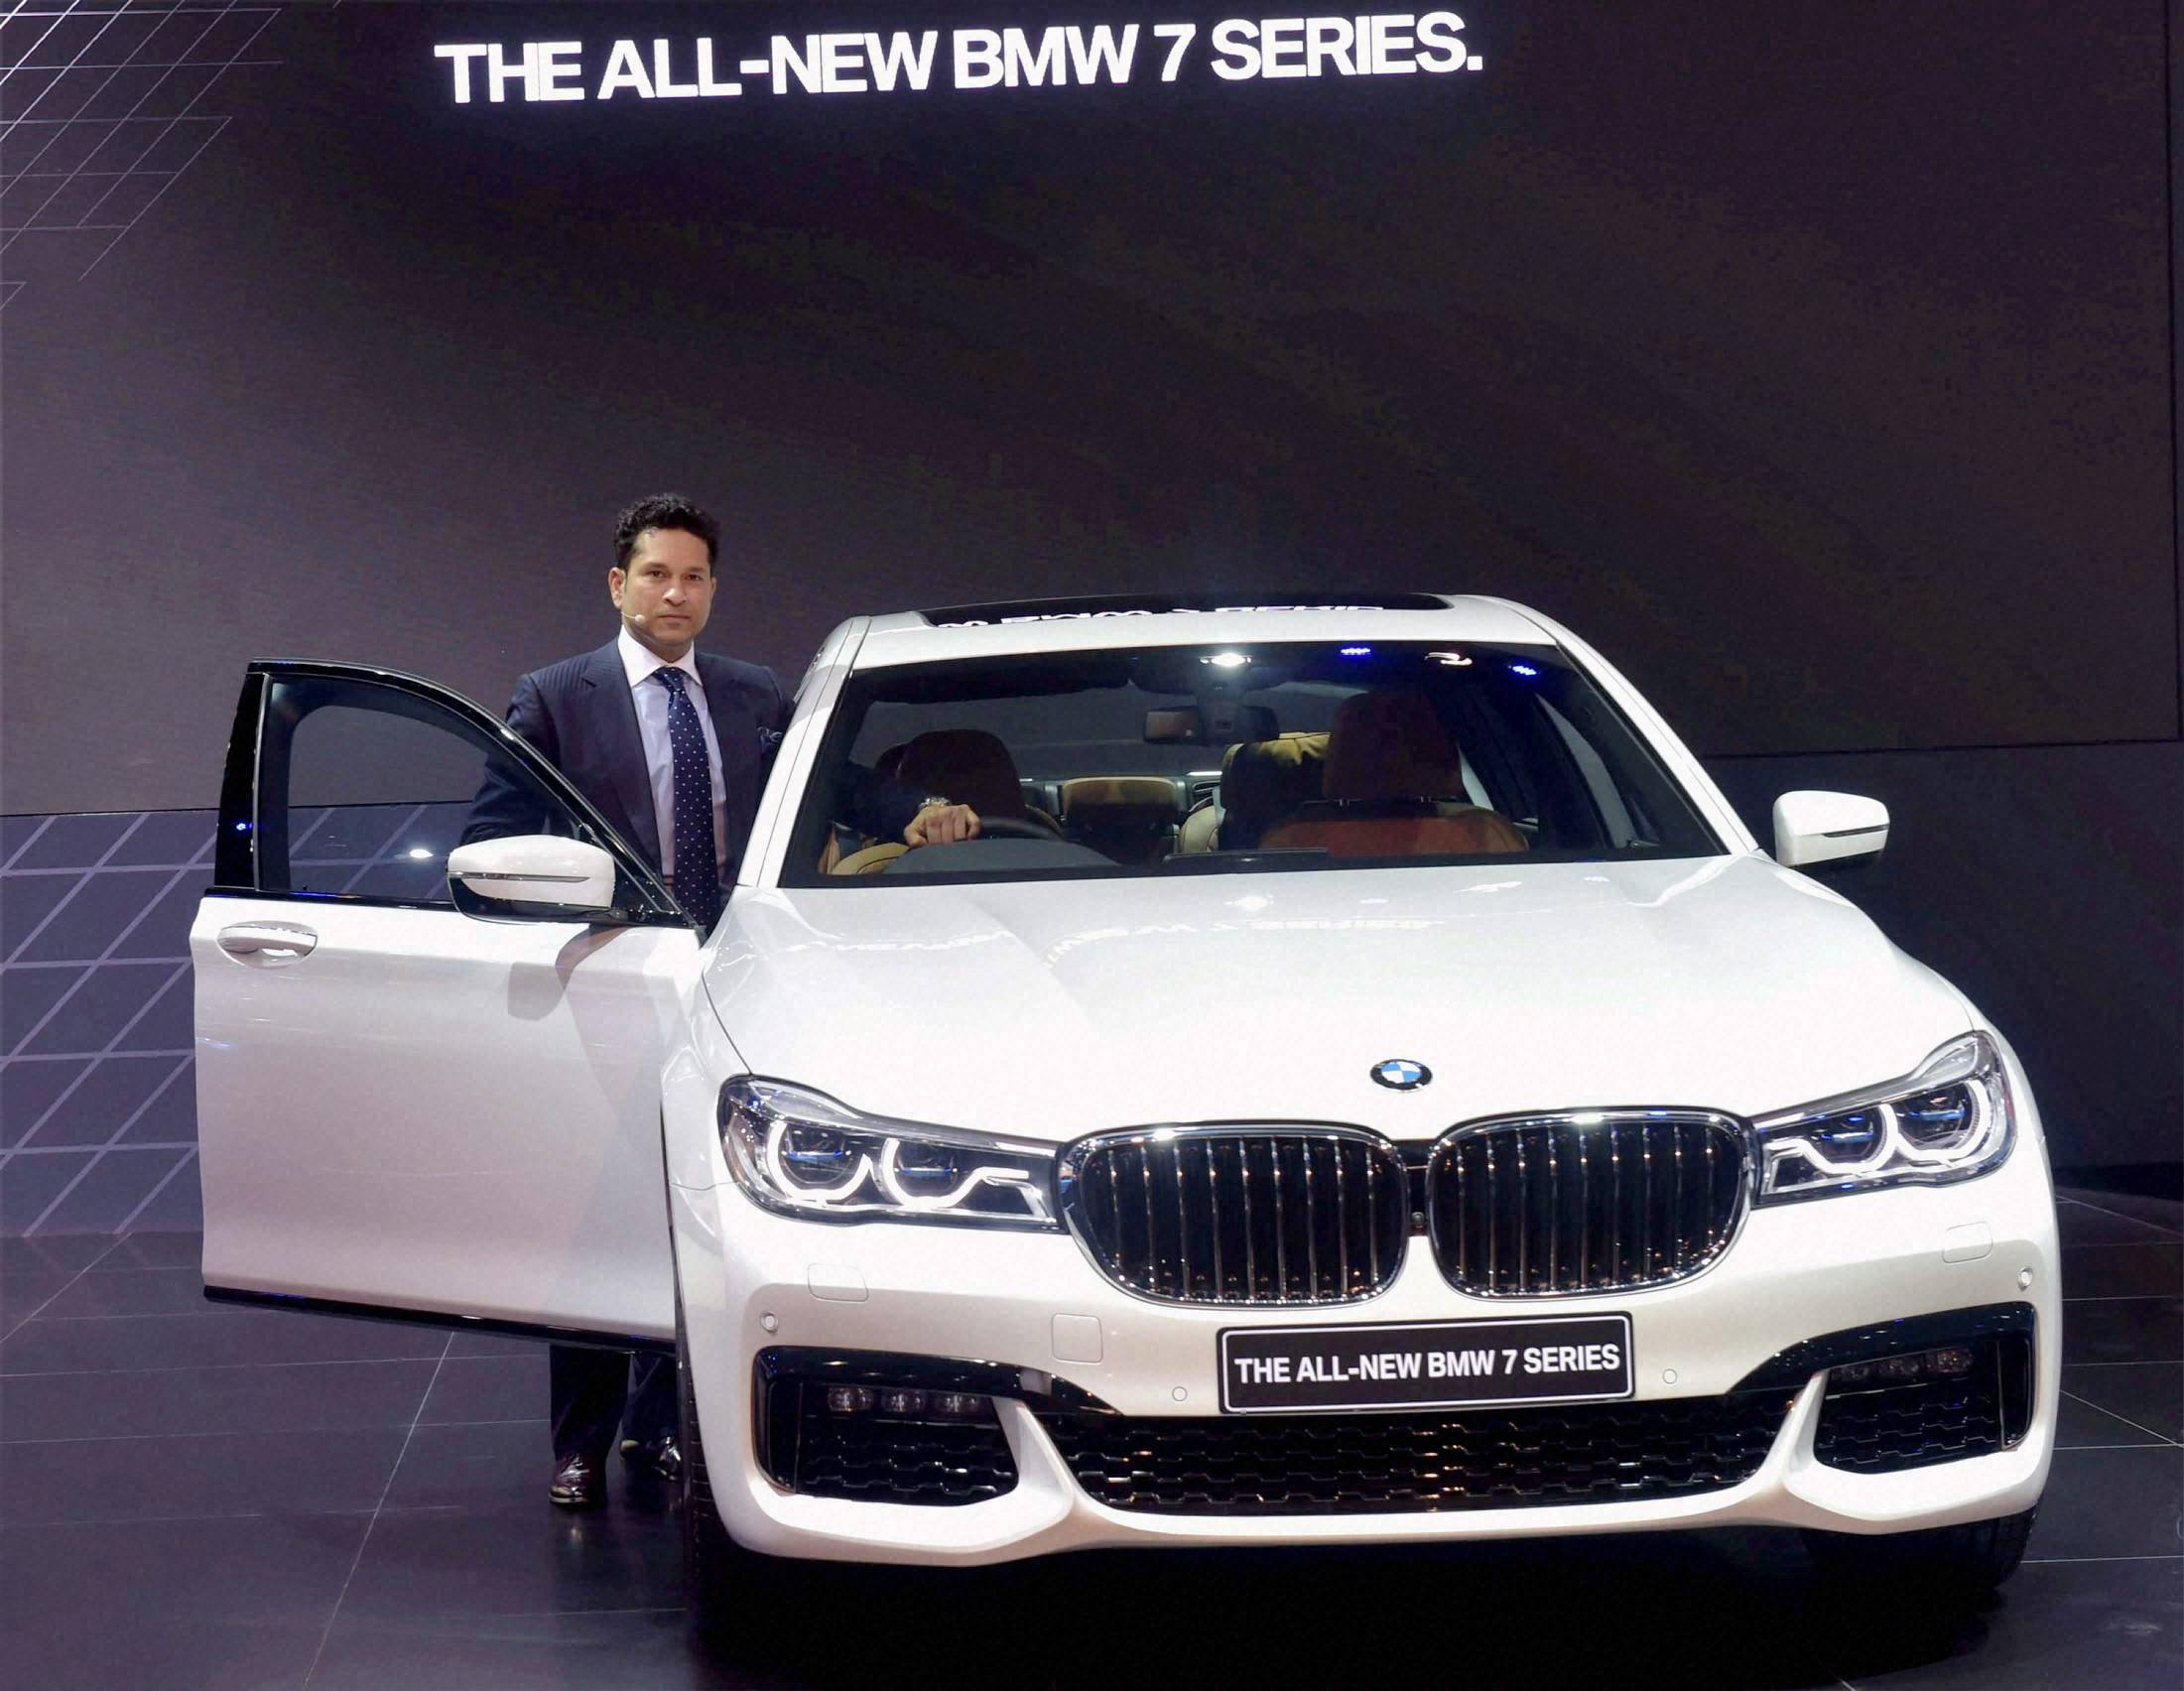 Auto Expo 2016 : Sachin Tendulkar at the launch of BMW 7 Series